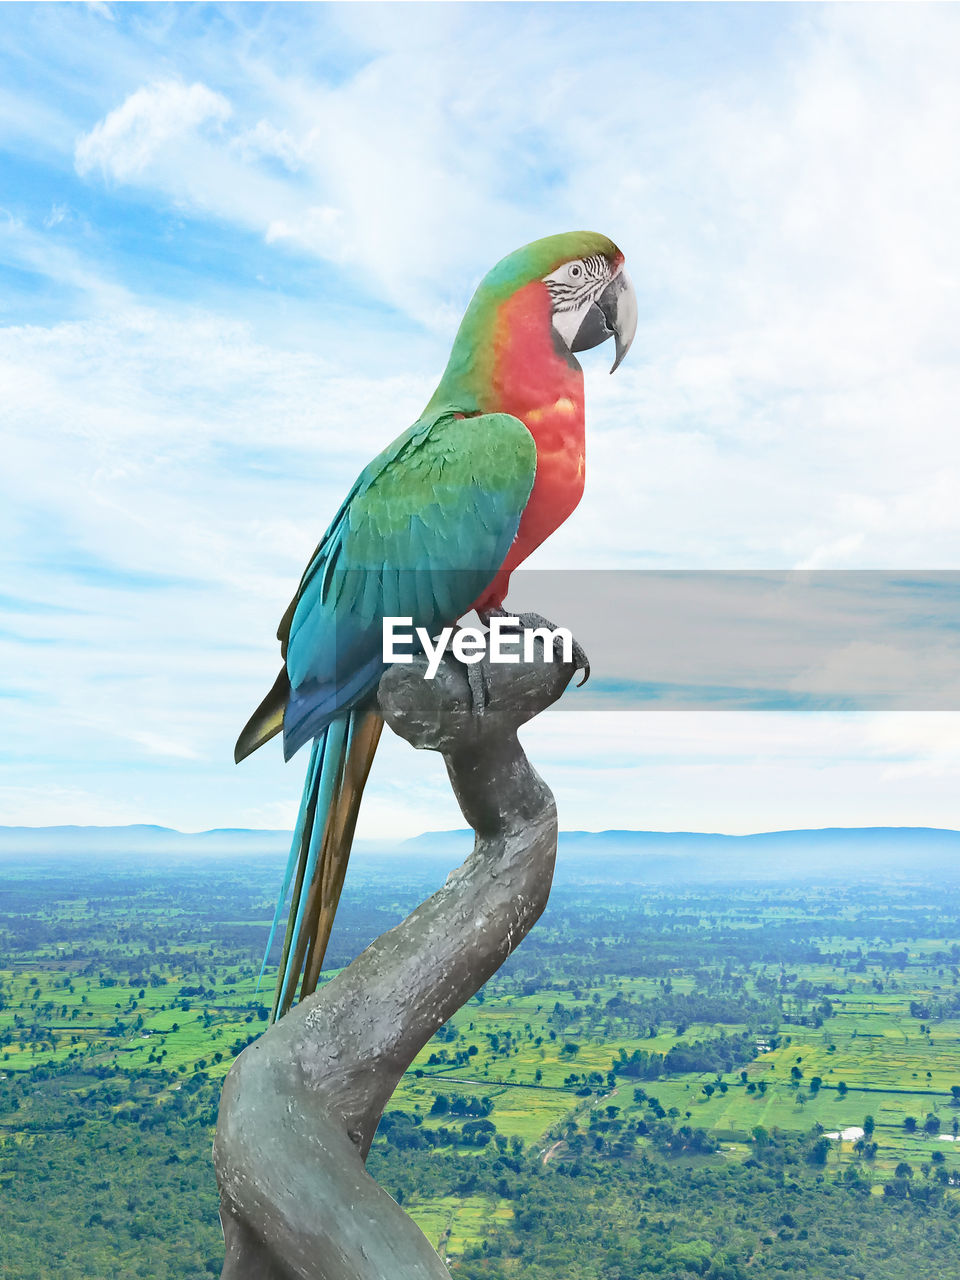 bird, animal themes, animal, vertebrate, sky, animal wildlife, parrot, animals in the wild, beauty in nature, green color, perching, cloud - sky, nature, no people, day, plant, tree, environment, one animal, outdoors